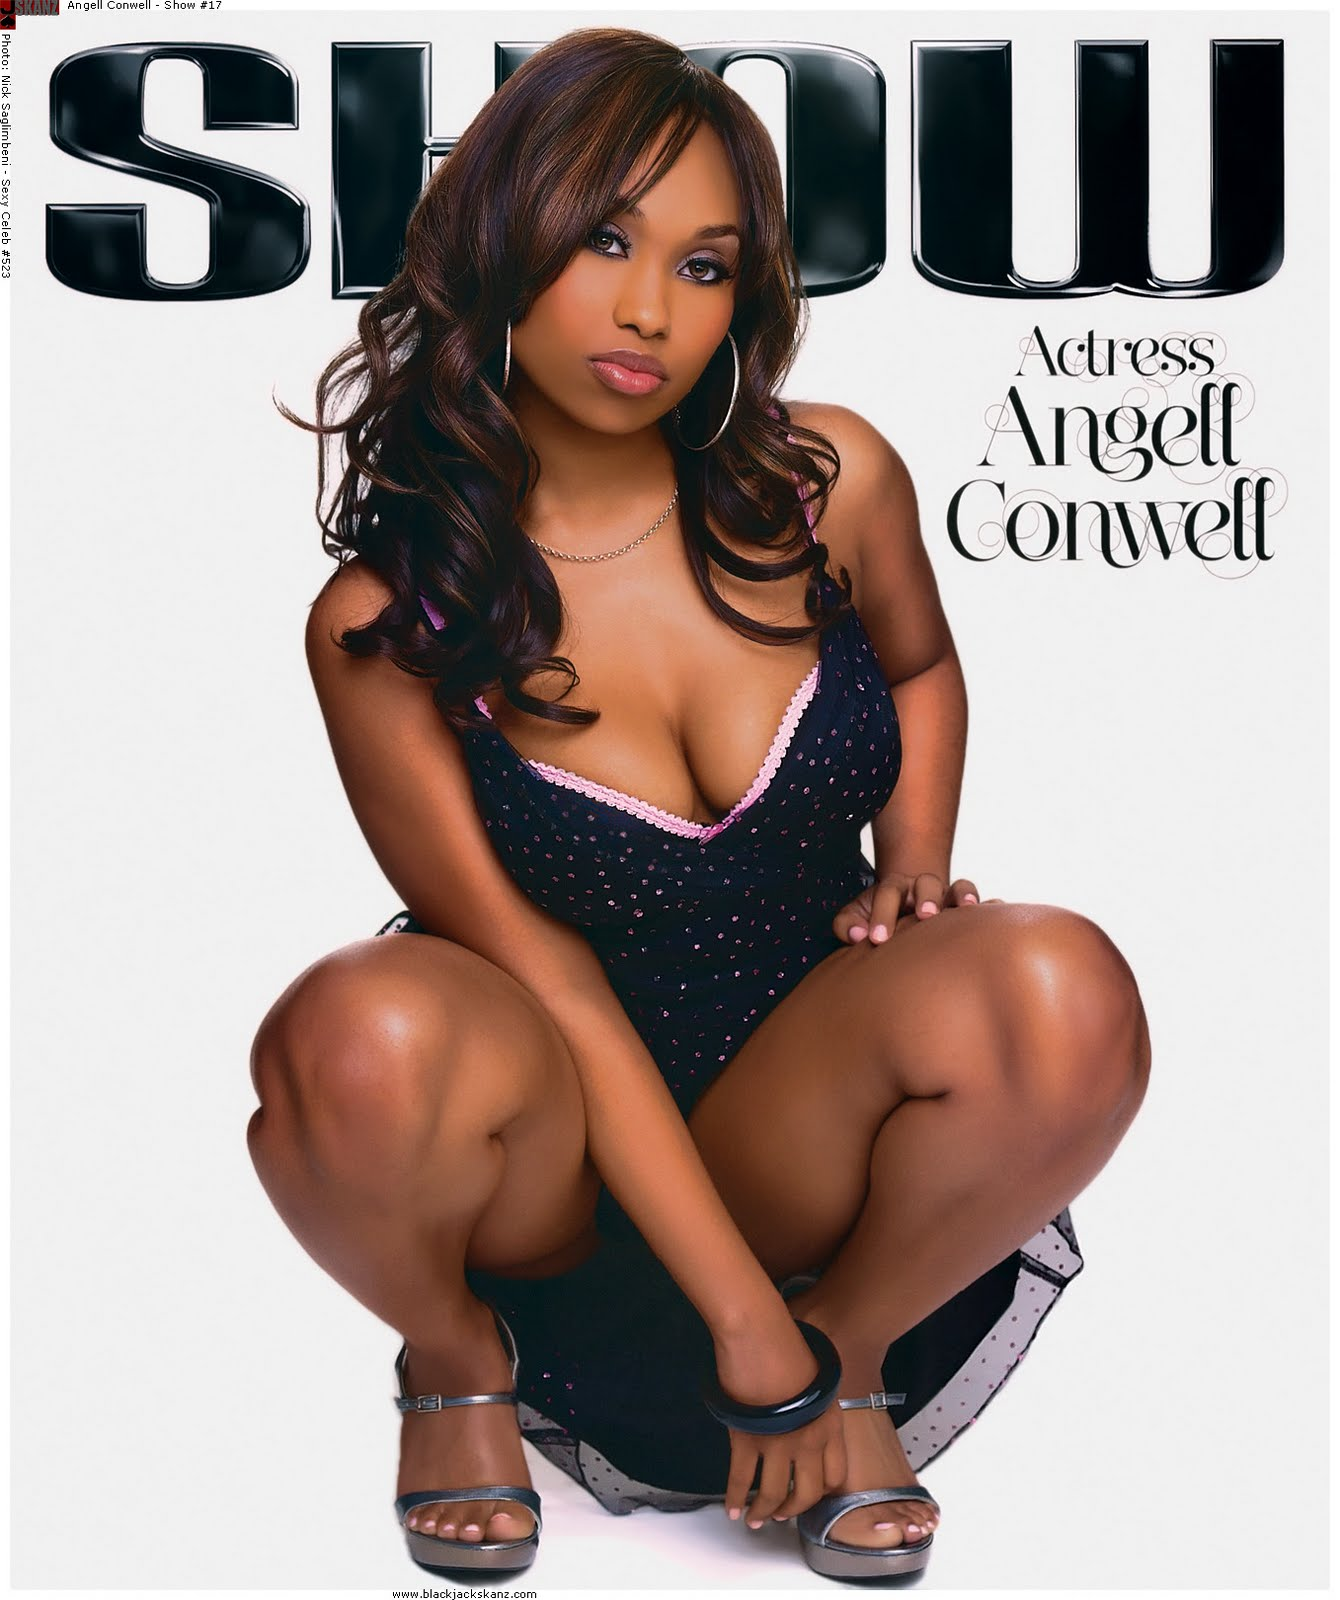 1000+ images about Angell Conwell on Pinterest | The ...